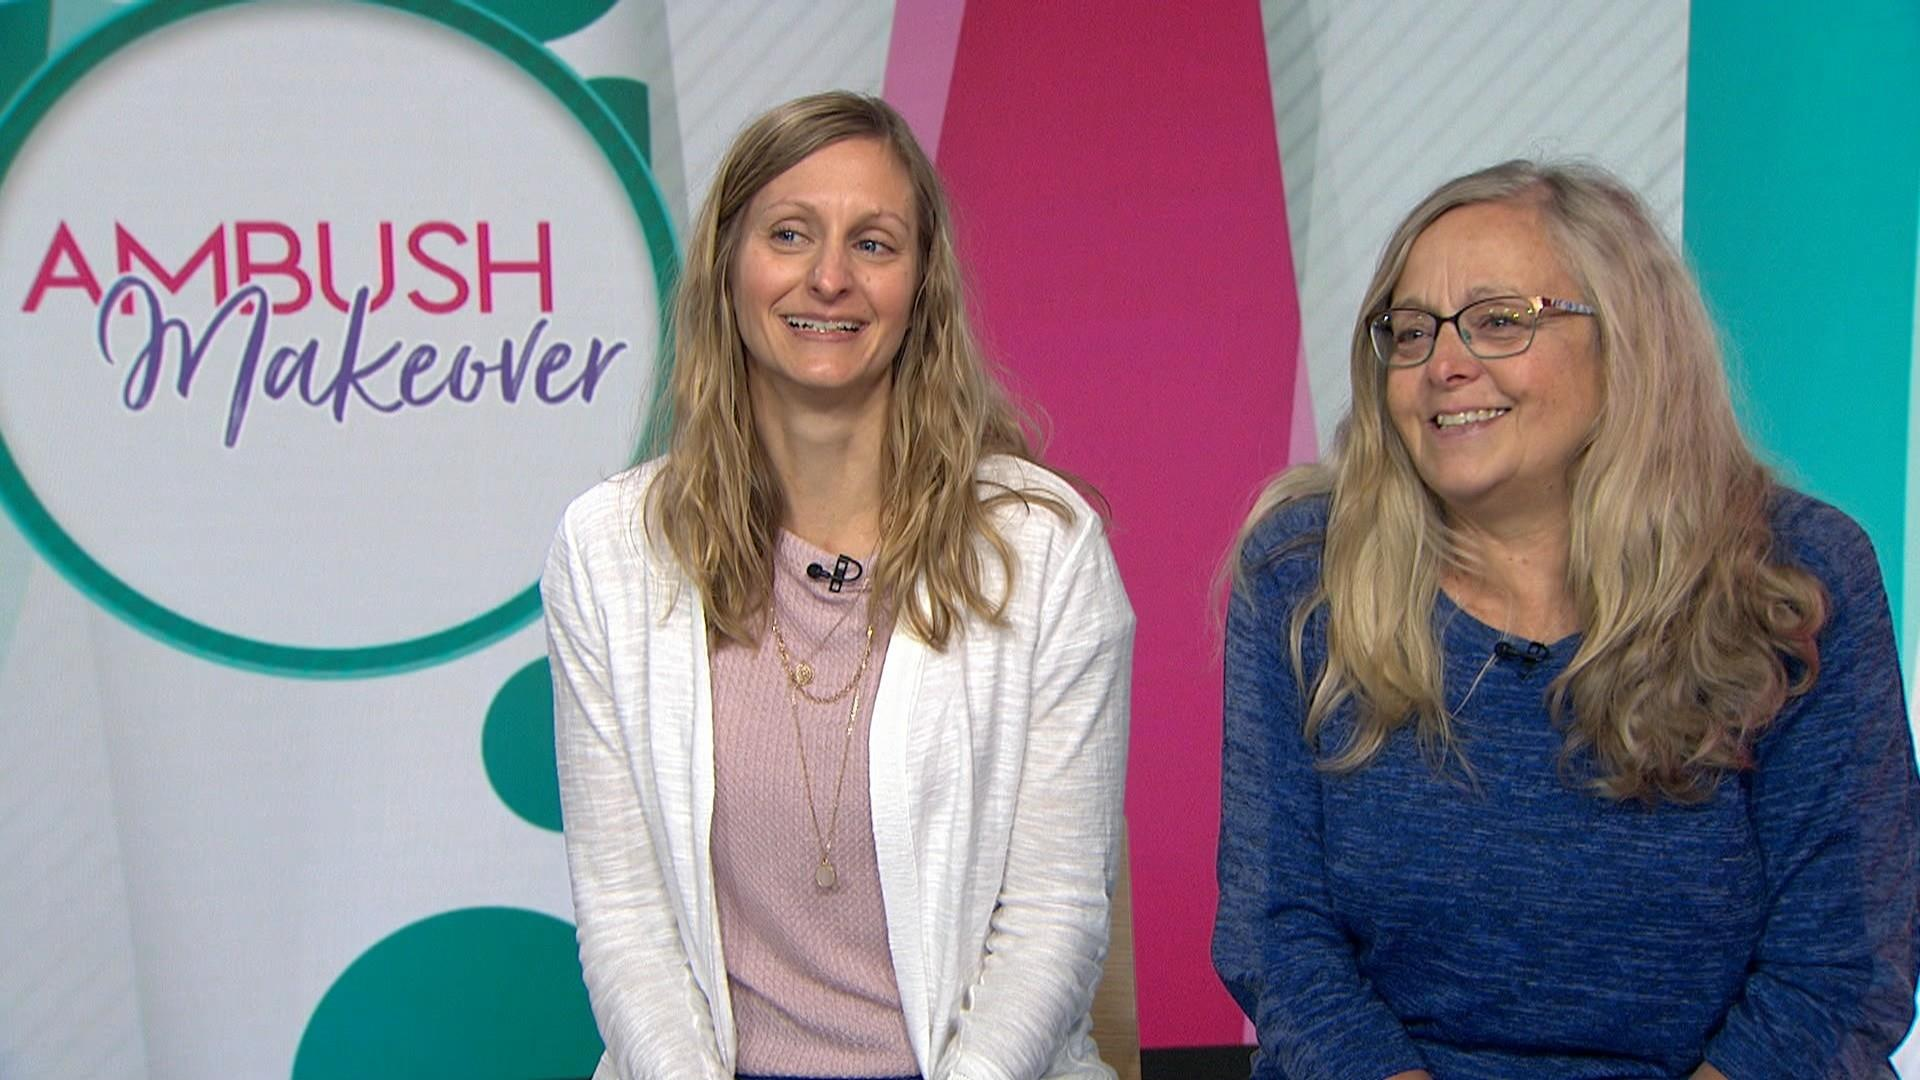 Ambush Makeover: See mom and daughter's fabulous new looks